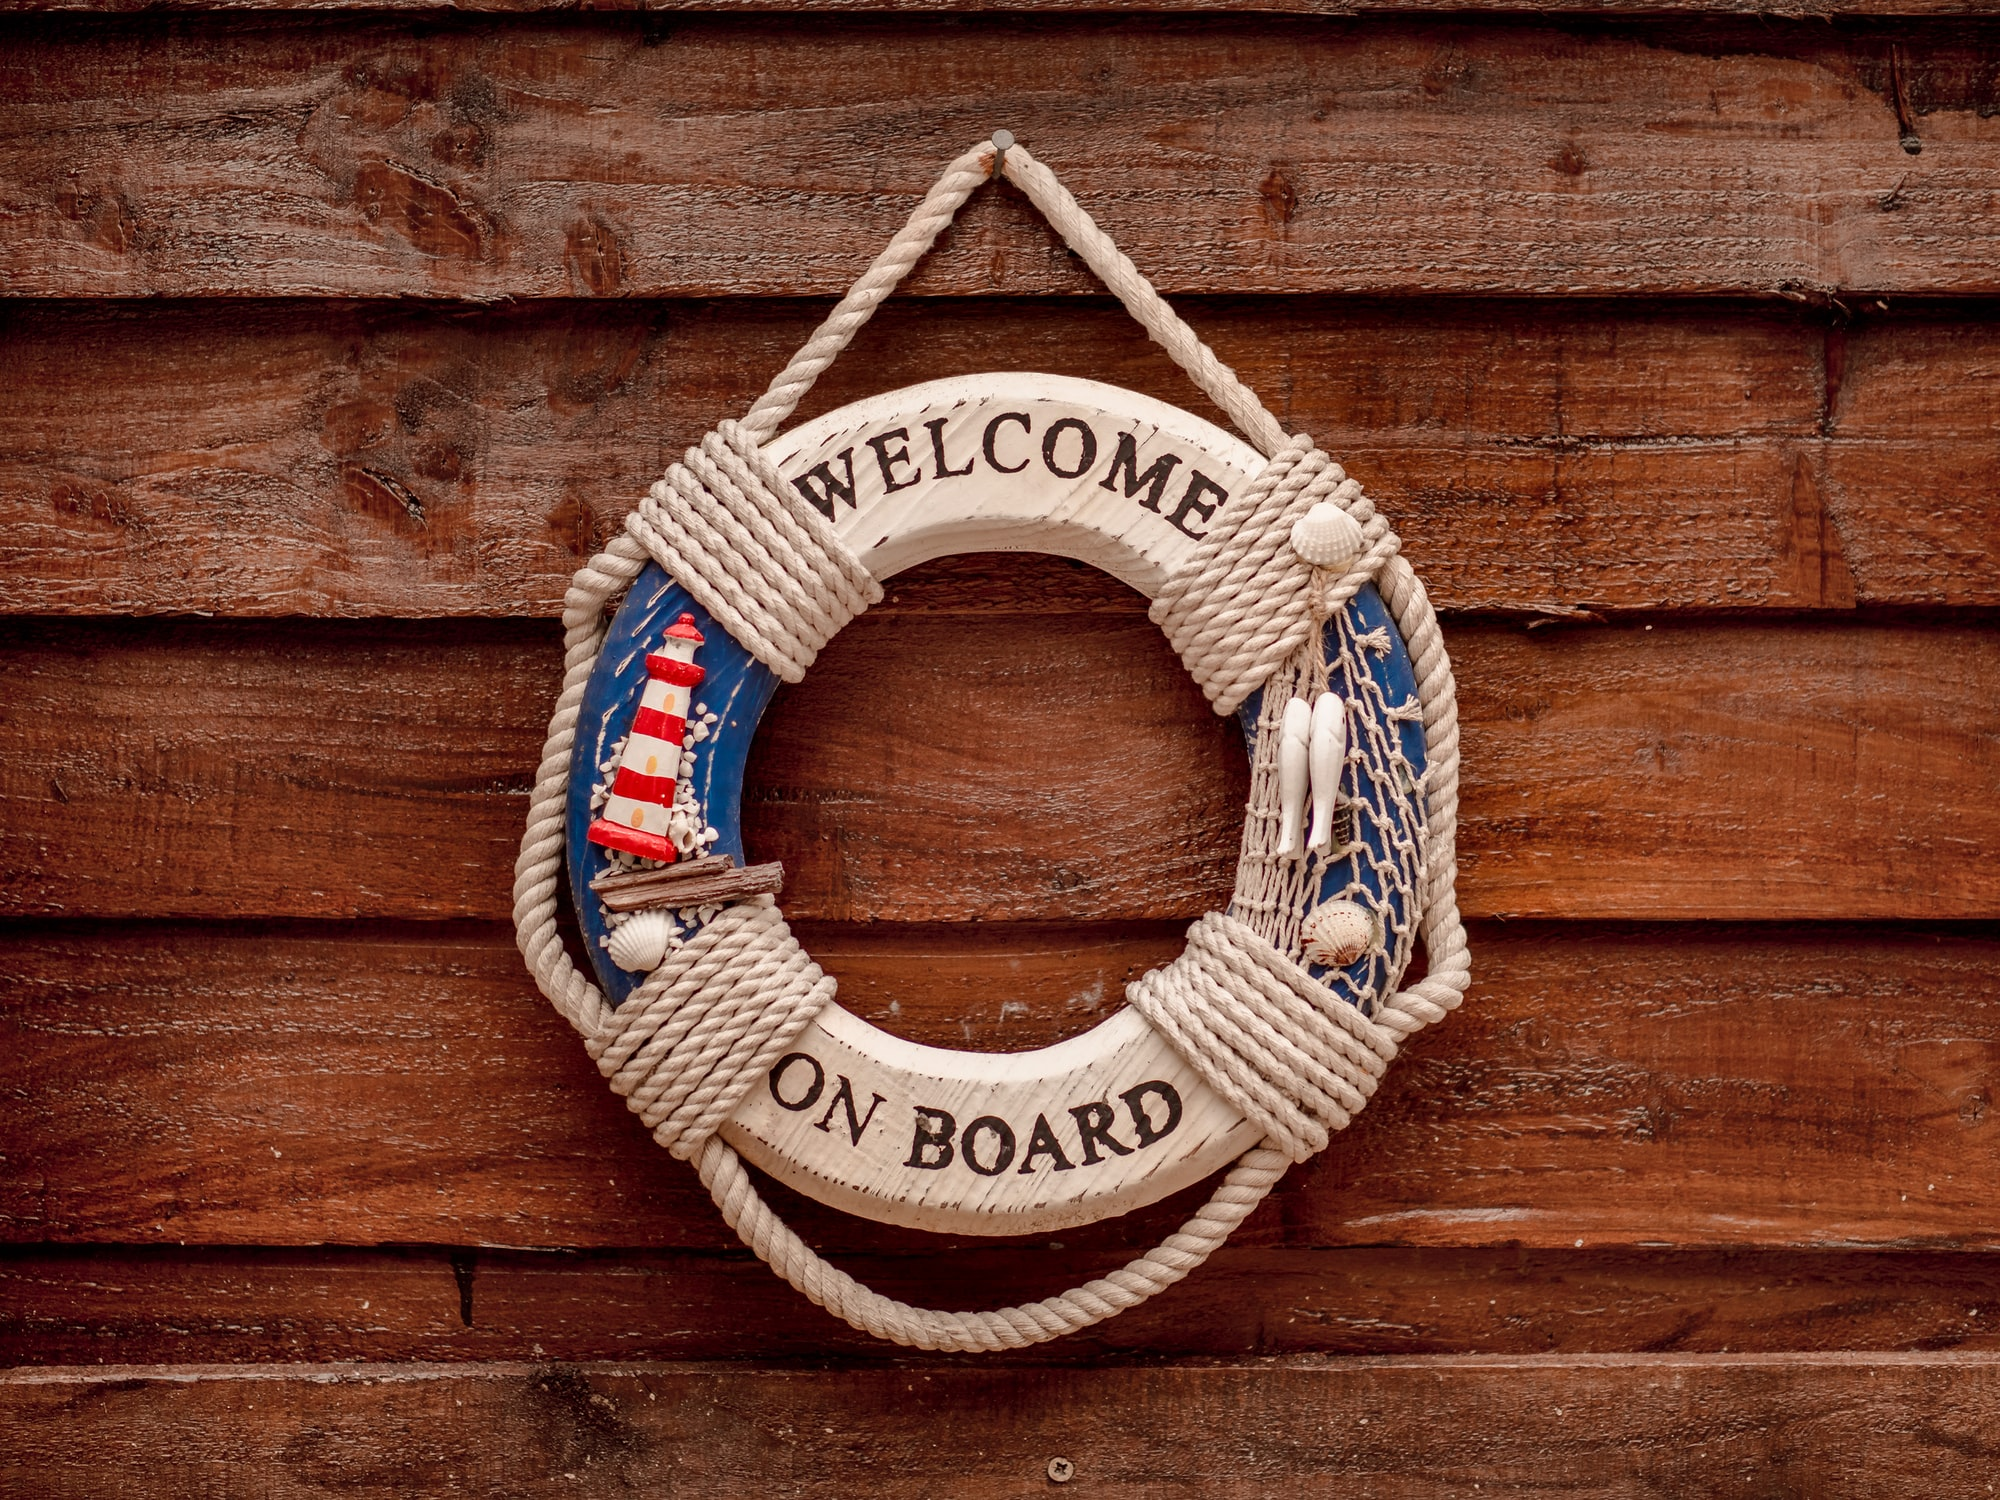 Onboarding is one of the first chances you have to impress